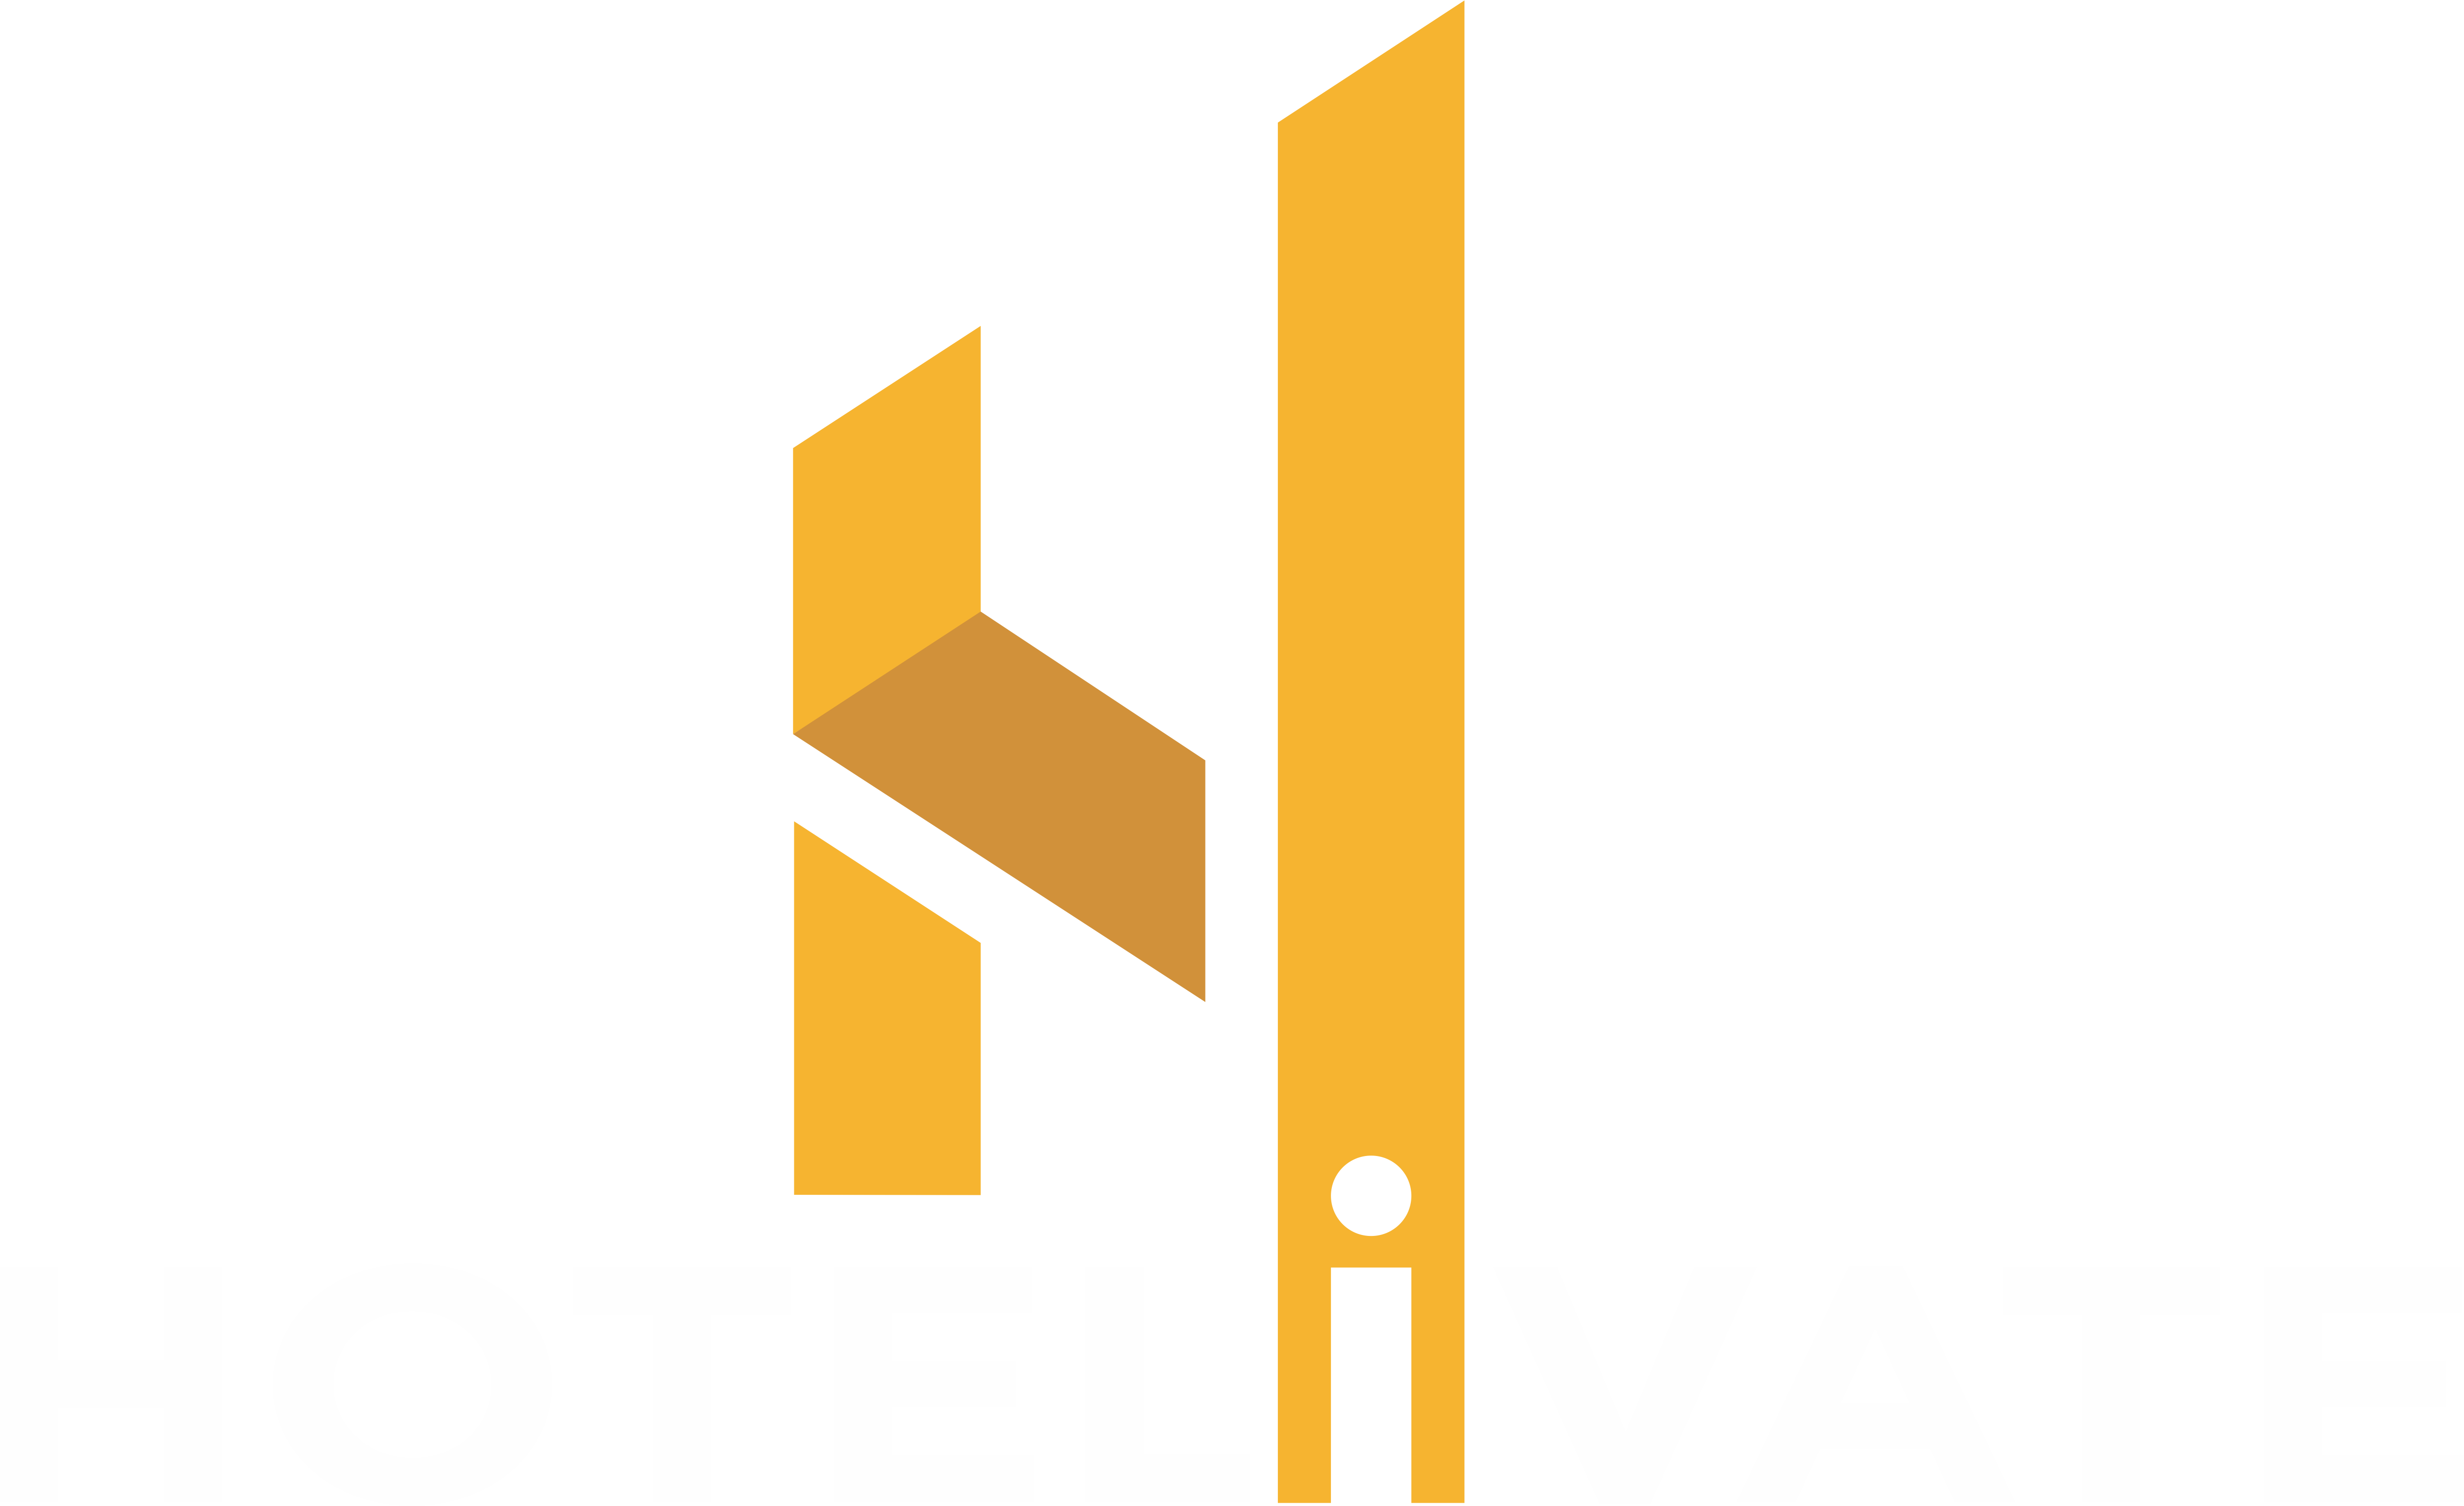 Hotelivate